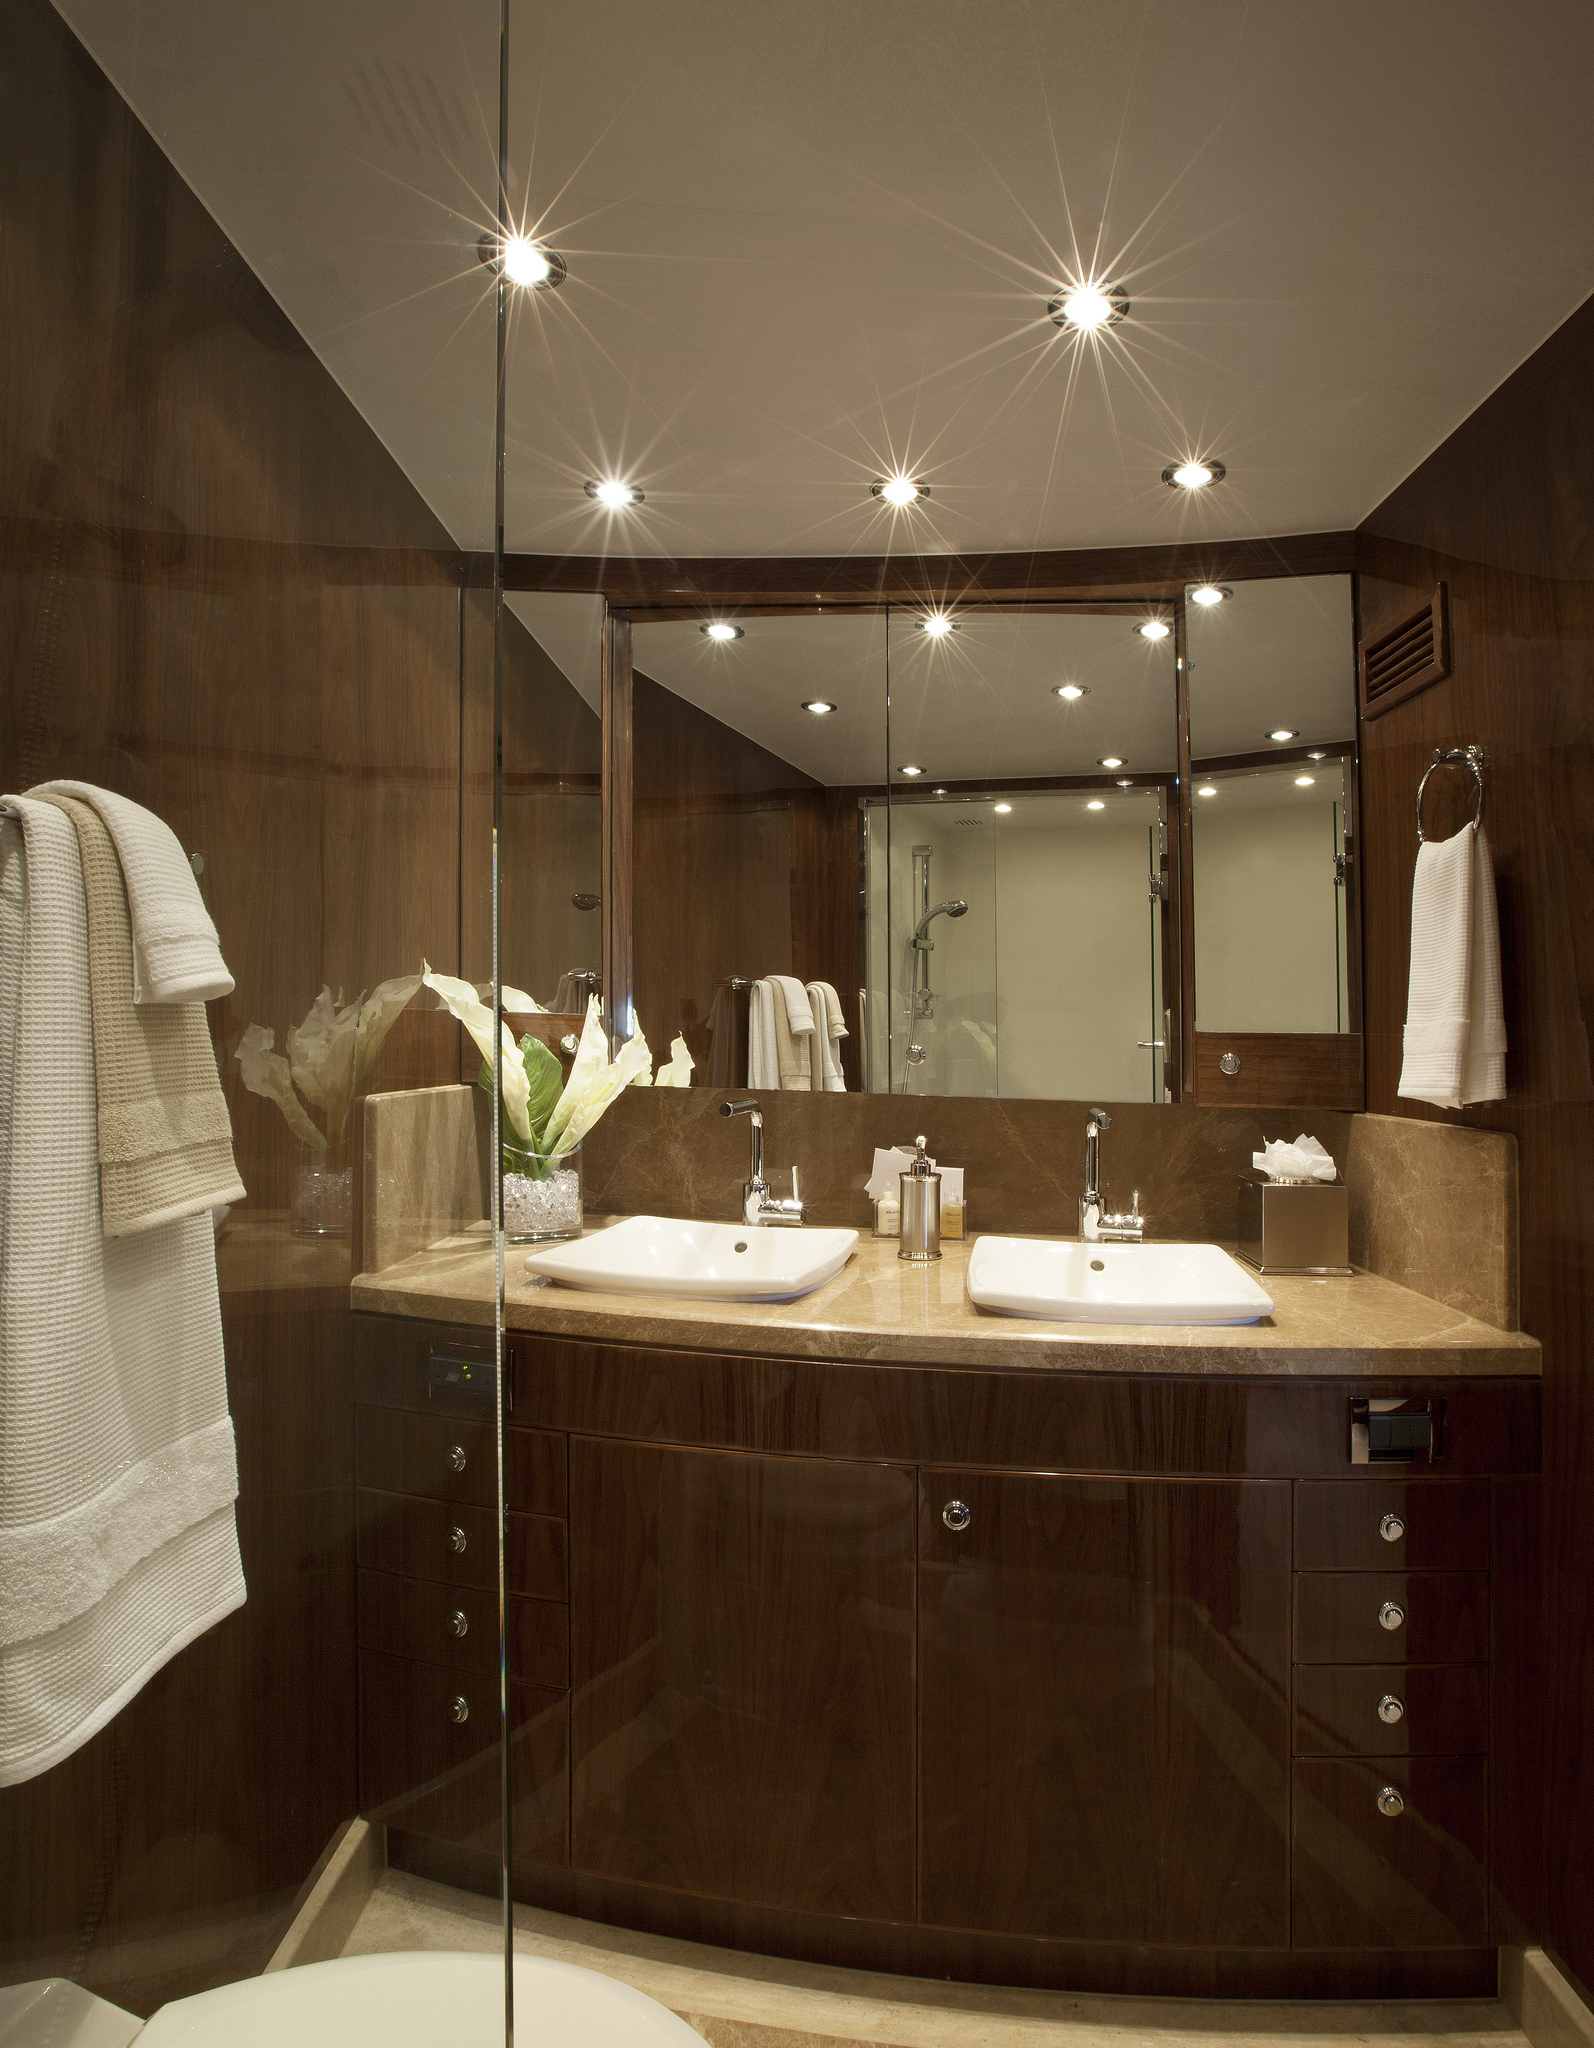 Guest Cabin - Bathroom